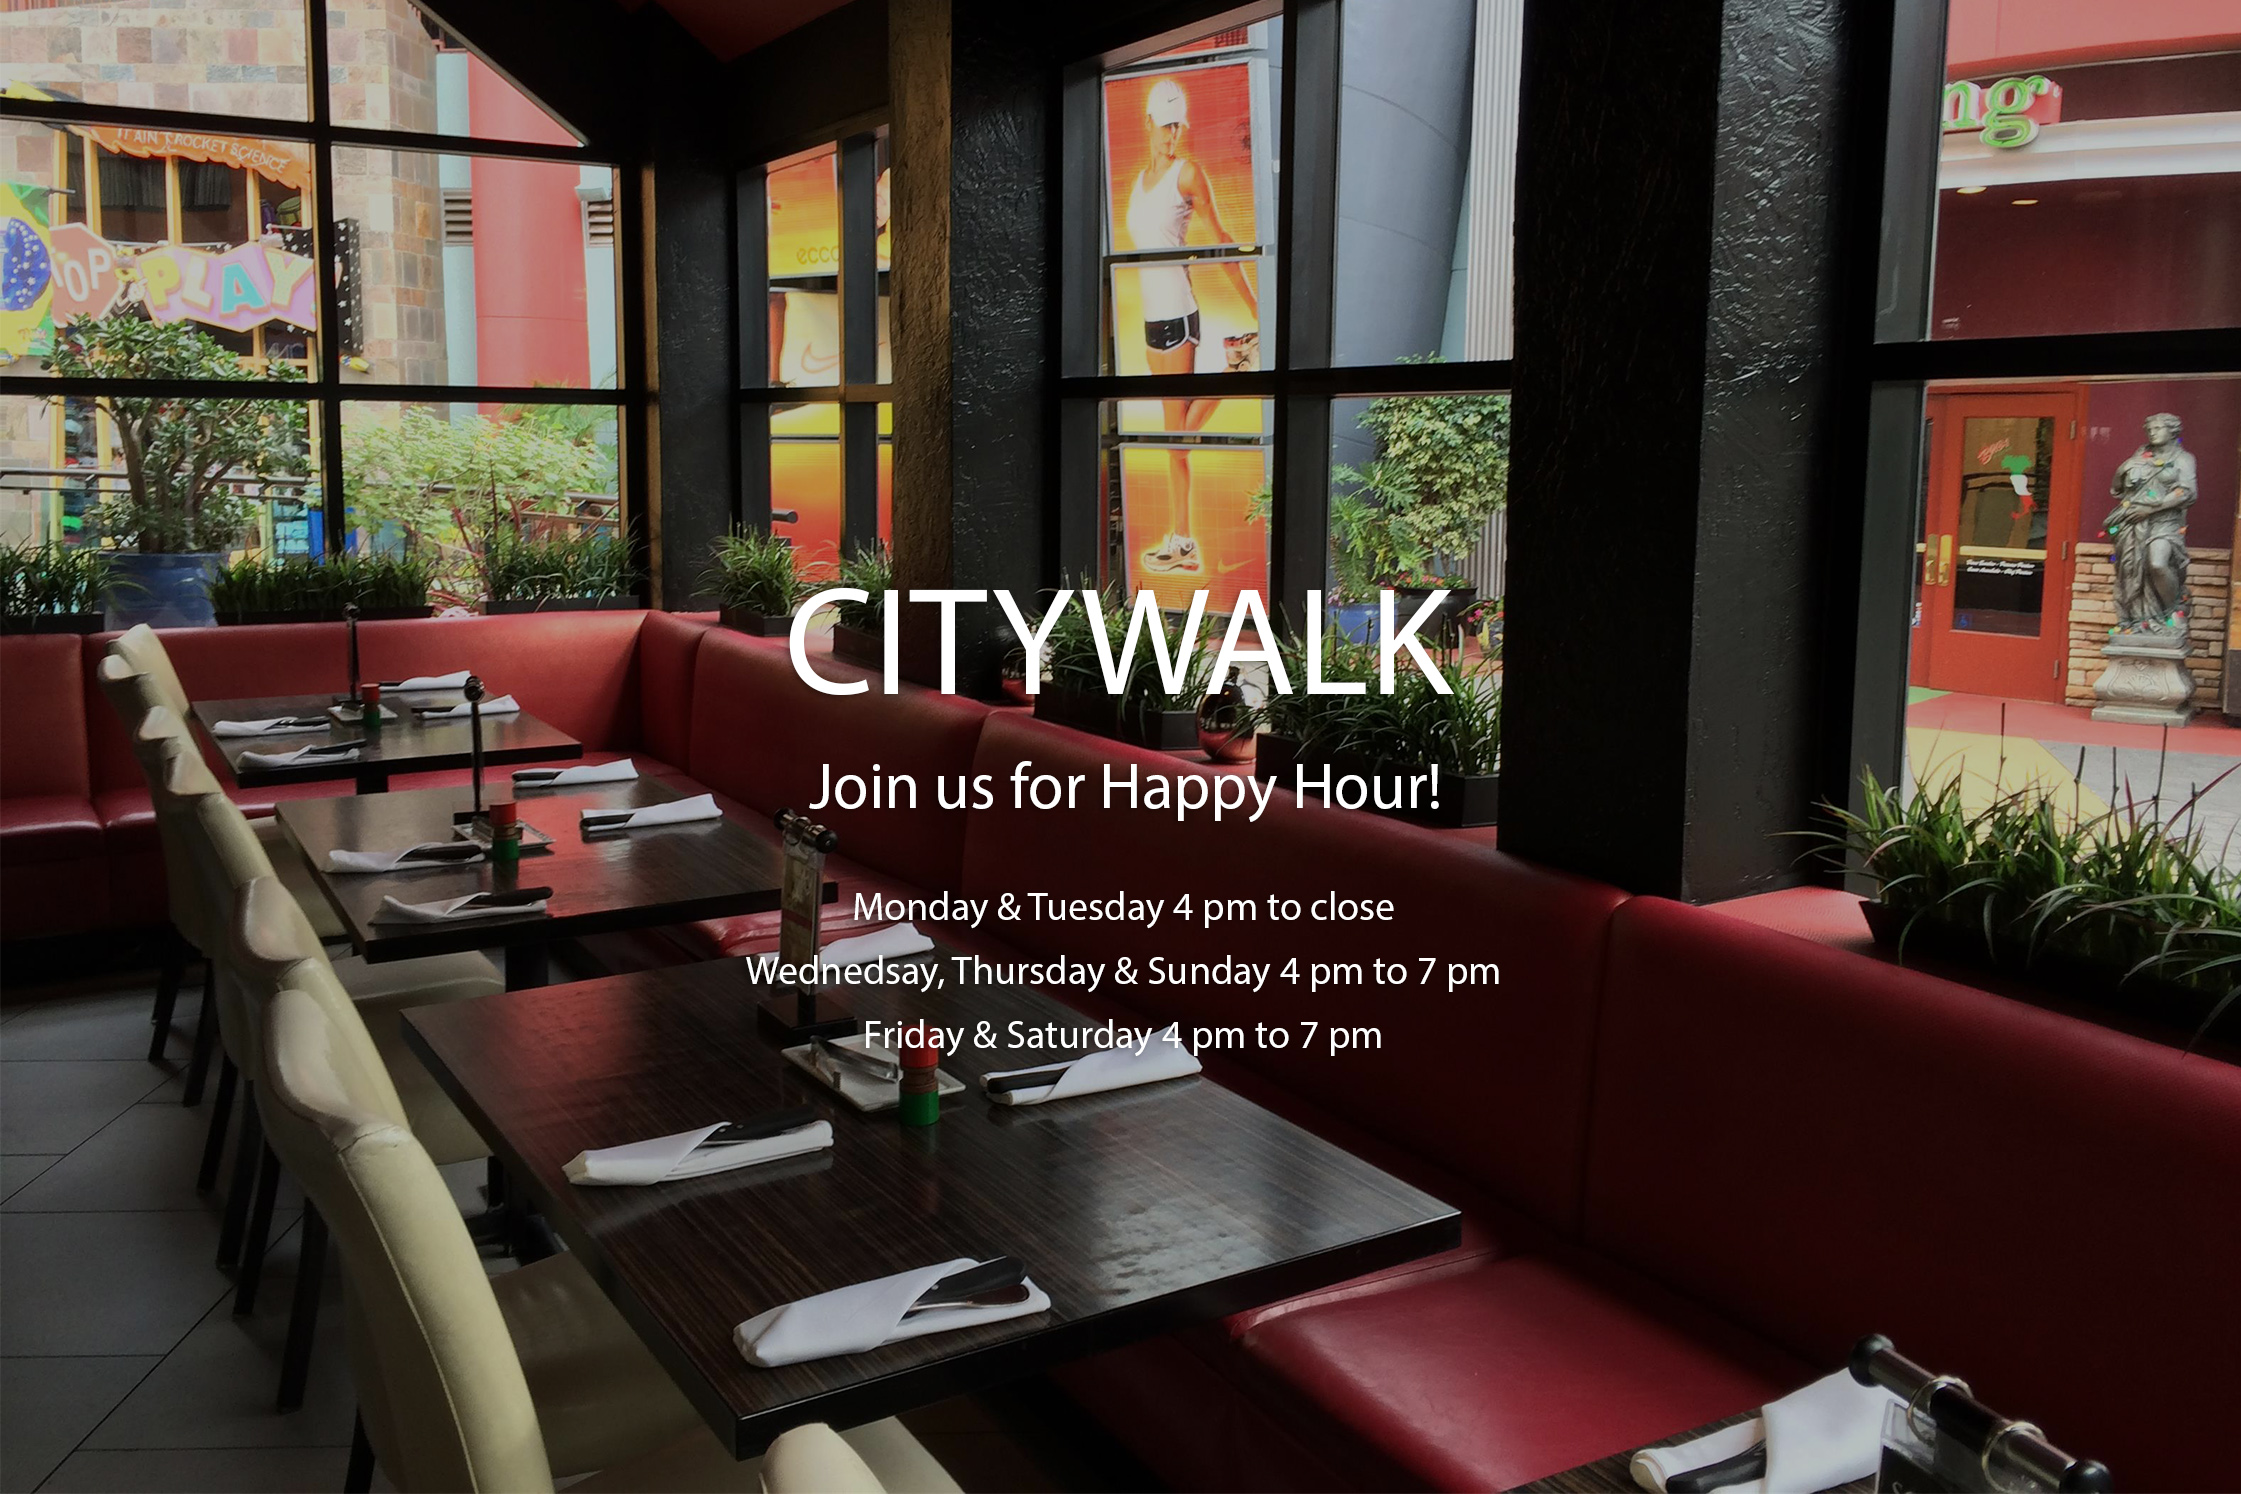 CITYWALK Join us for Happy Hour! Monday and Tuesday 4 pm to close. Wednesday, Thursday and Sunday 4 pm to 7 pm. Friday and Saturday 4 pm to 7 pm